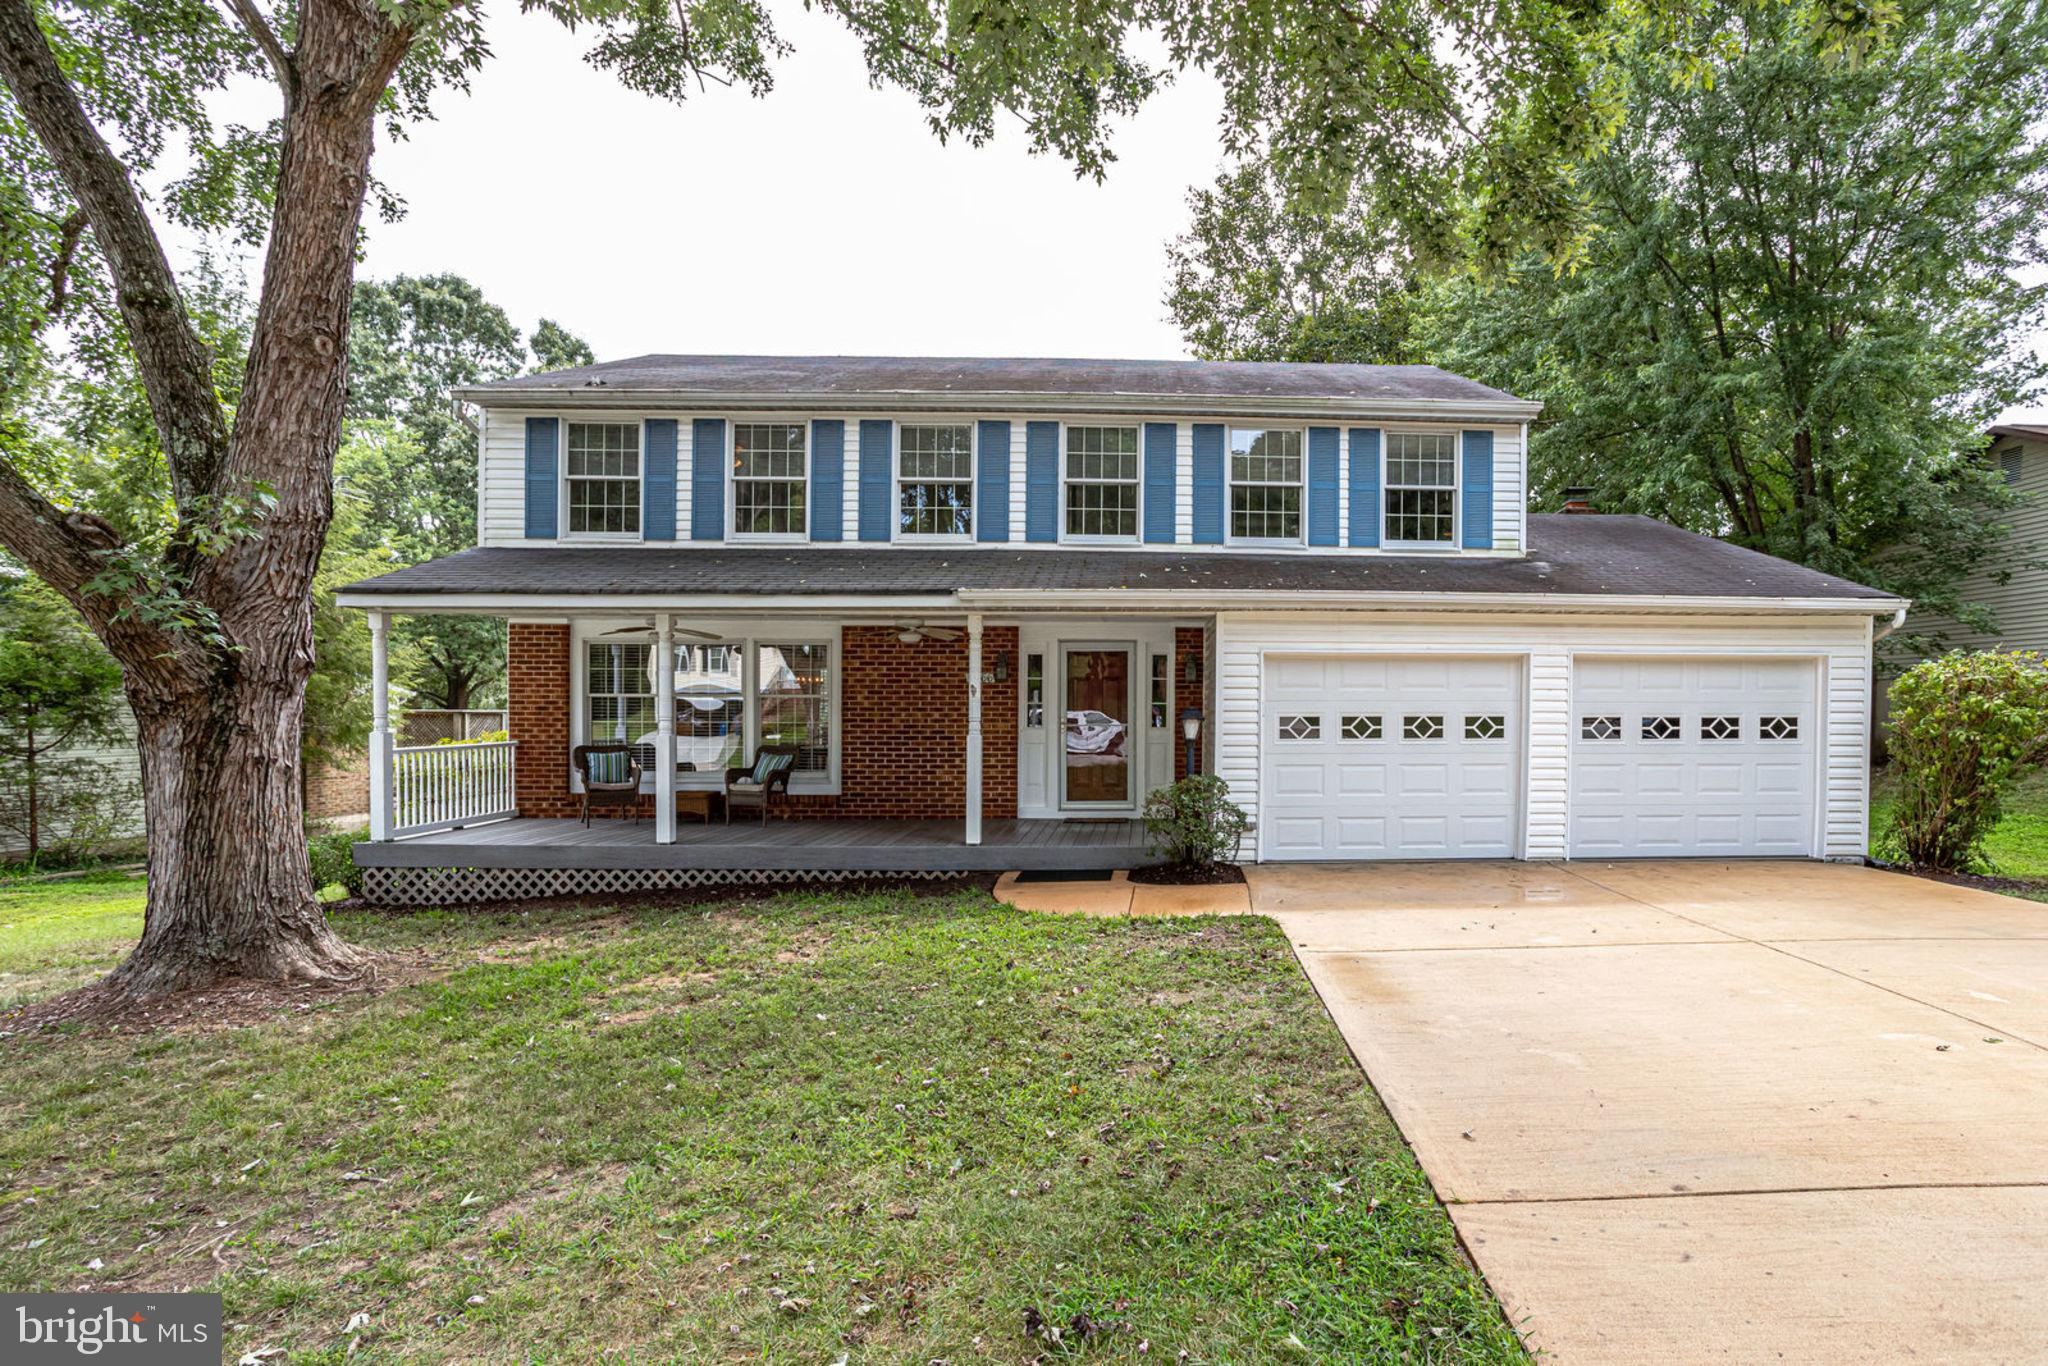 Searching for a property with the perfect combination of location and space? Bring your red slippers... You've come to the right place because there is no place like this home!  This stylish home features three finished levels with lots of natural light in the highly desirable Middle Valley neighborhood in West Springfield. The main level boasts an open floor plan with dining and living adjacent to the kitchen that flows effortlessly into the nook and family room.  Large master suite includes walk-in closet, separate vanity area and newly tiled shower. Be amazed at the size of the three additional bedrooms on the upper level.  Don't forget about the walk-out lower level that includes a full bath and additional bedroom.  Work from home or enjoy the conveniences of the many commuting options available.